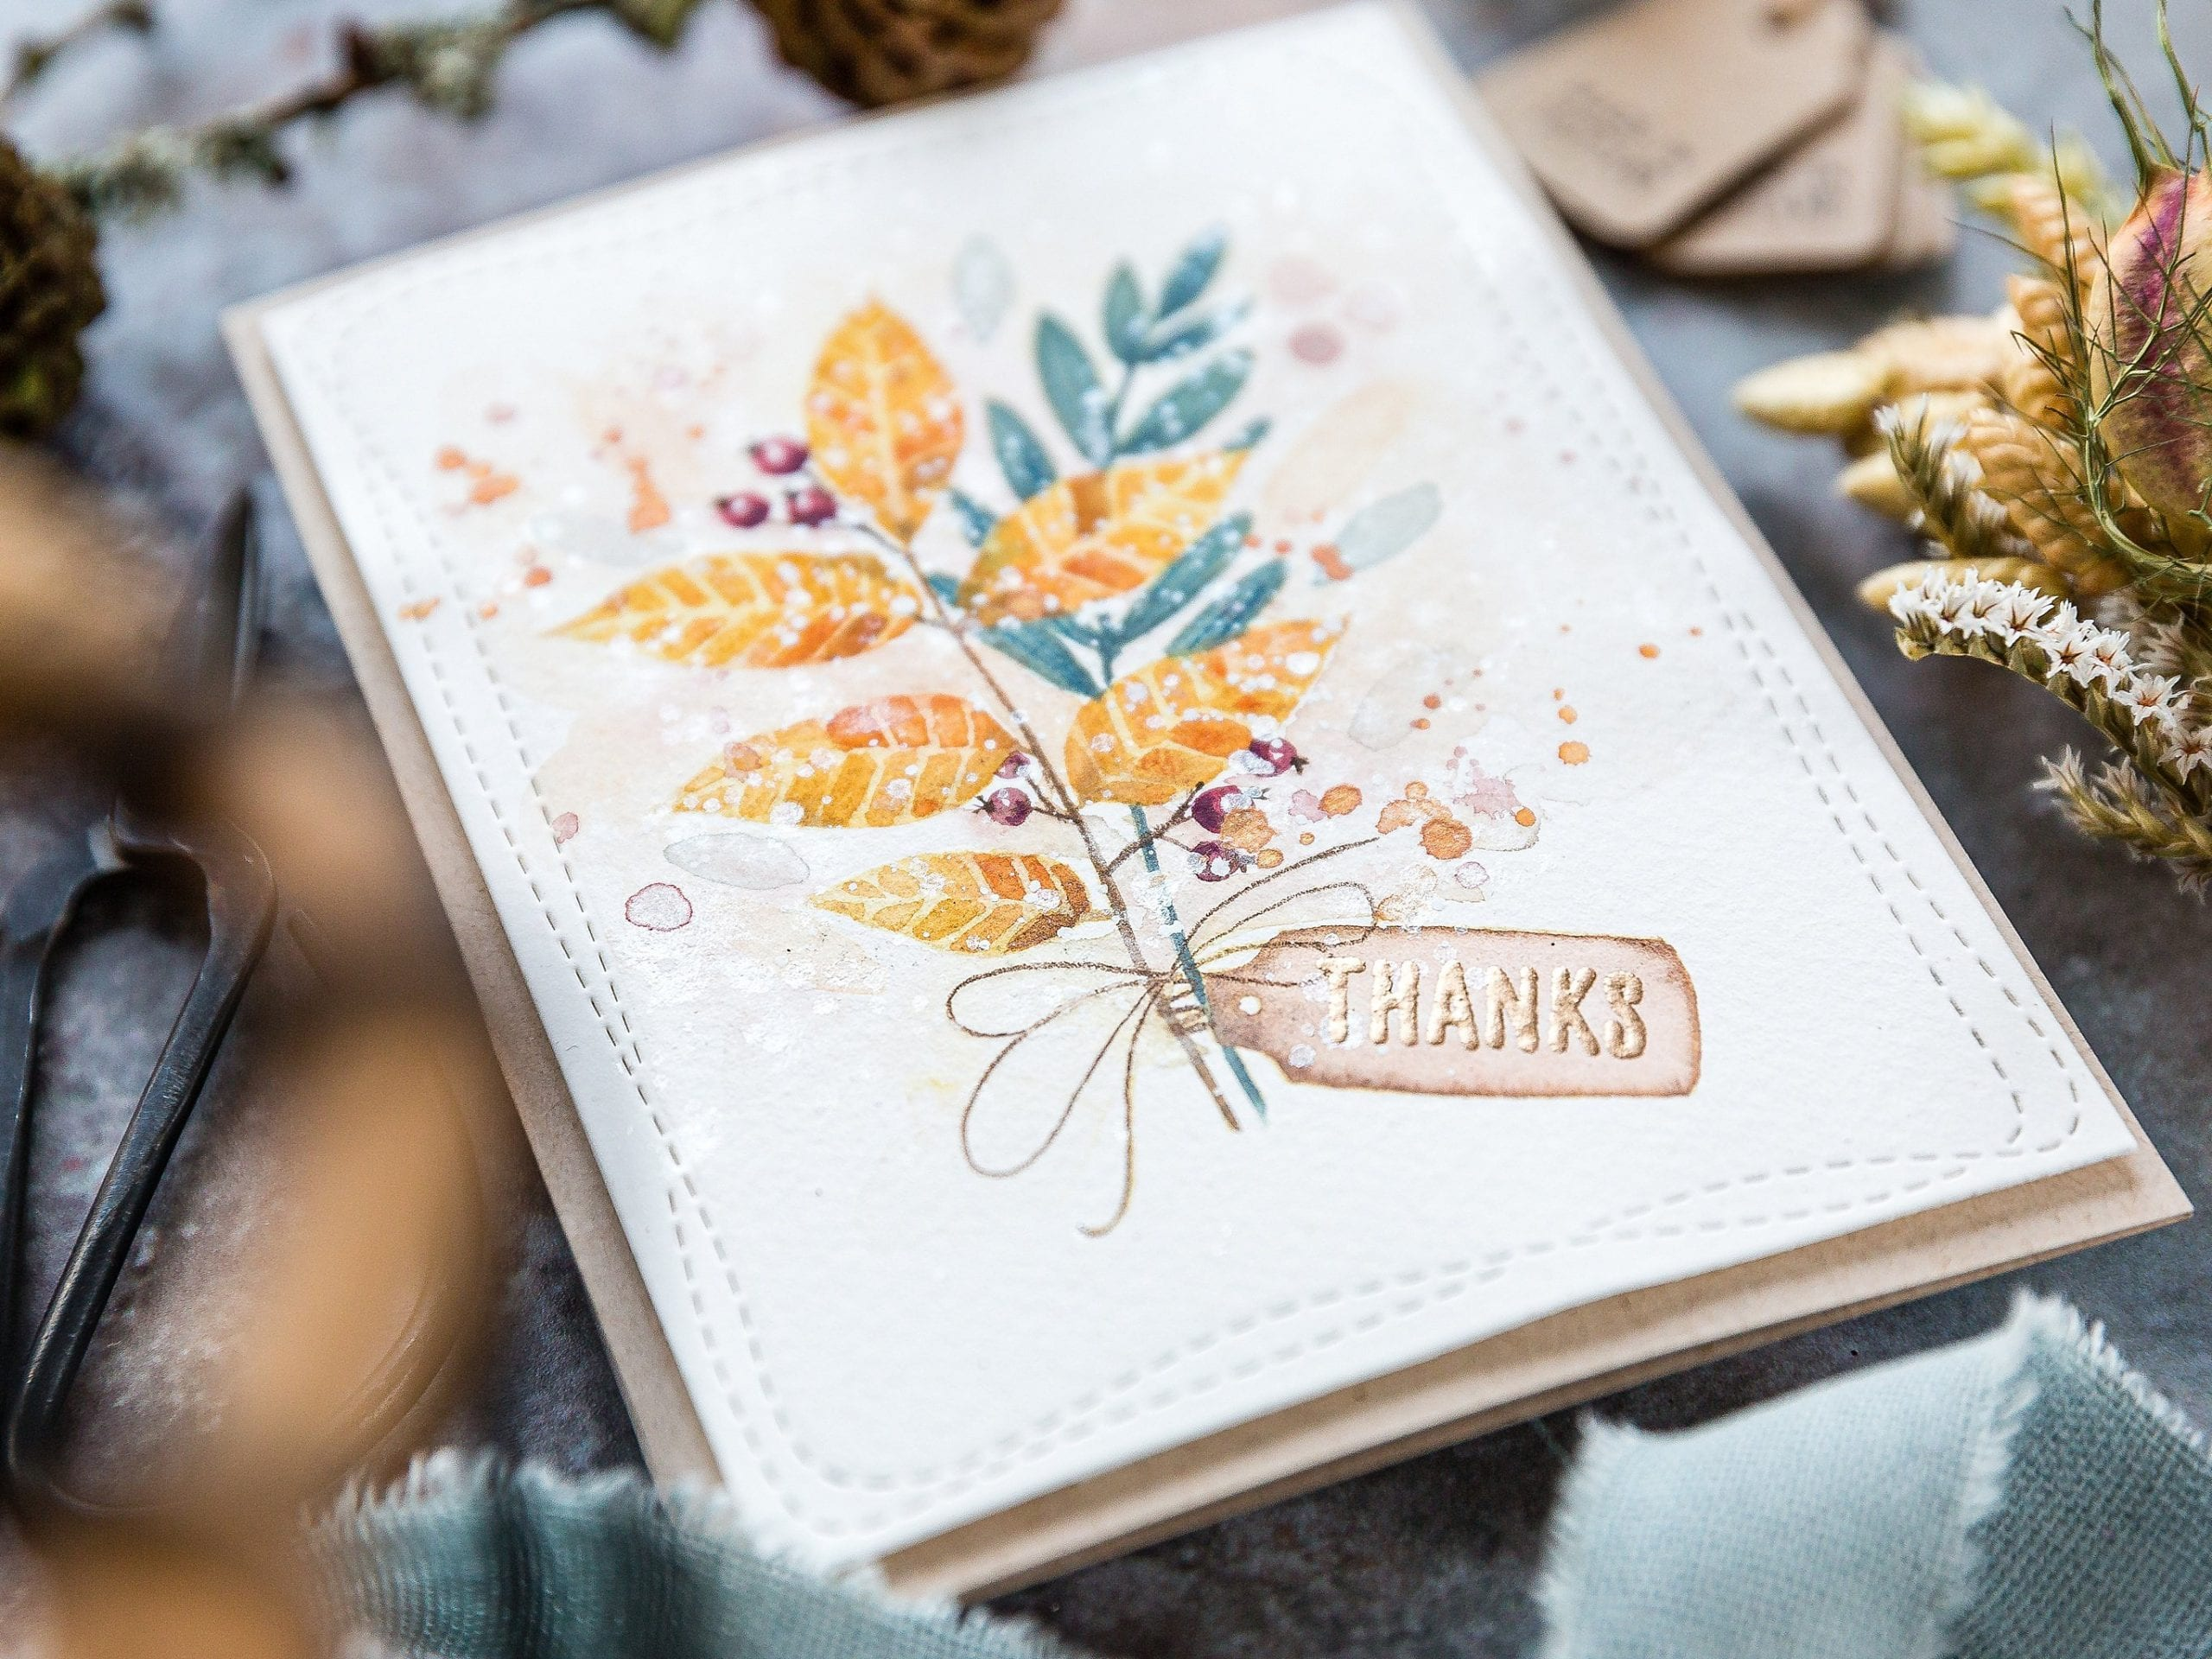 Watercoloured autumn leaves bouquet, handmade card by Debby Hughes using supplies from The Stamp Market. Find out more here:https://limedoodledesign.com/2019/09/the-stamp-market-stamptember/